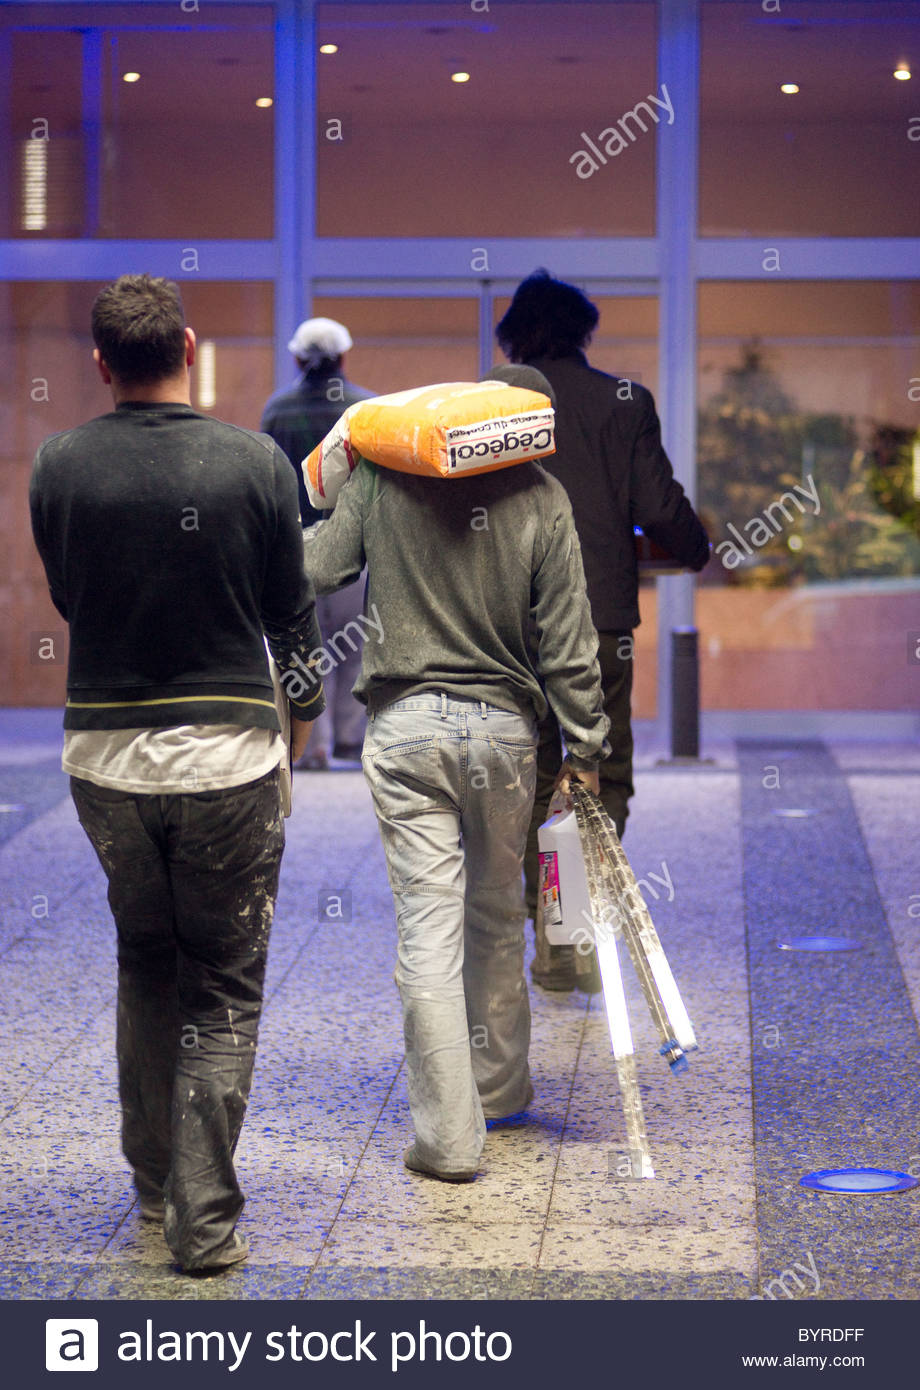 Workmen carrying building materials while walking - Paris France Stock Photo